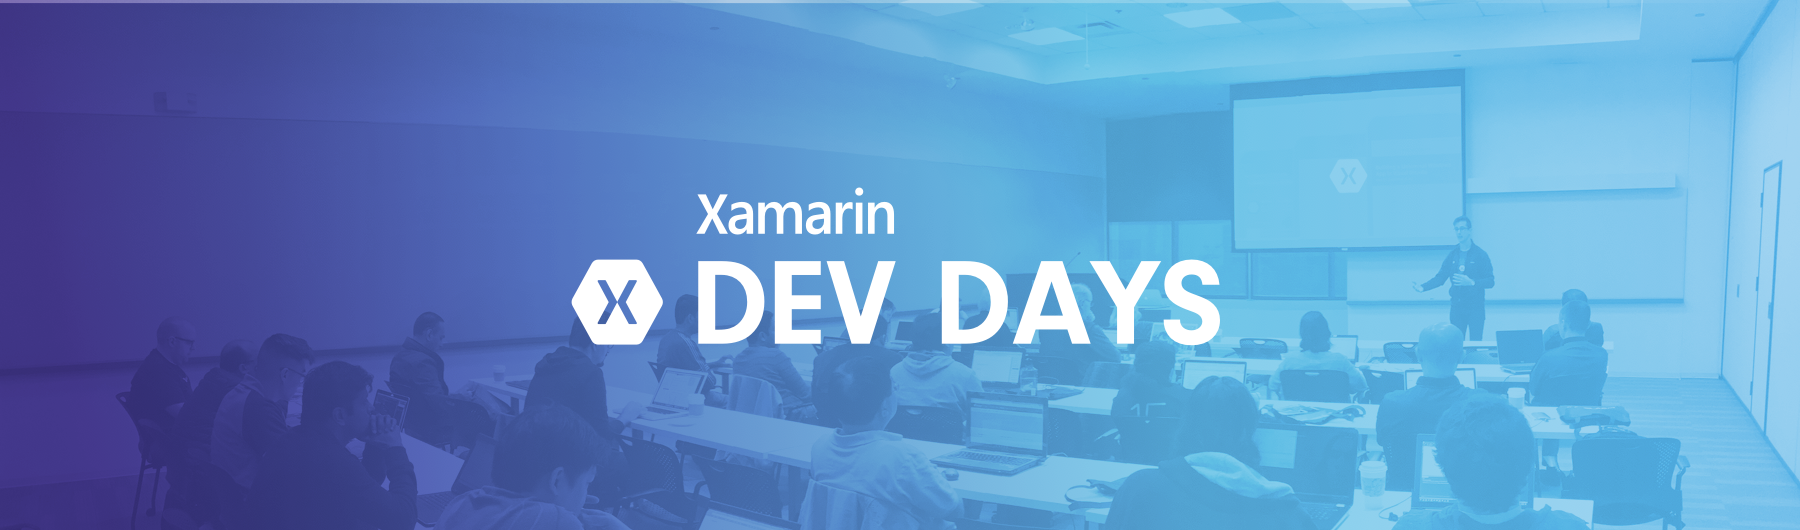 Xamarin Dev Days - Manchester